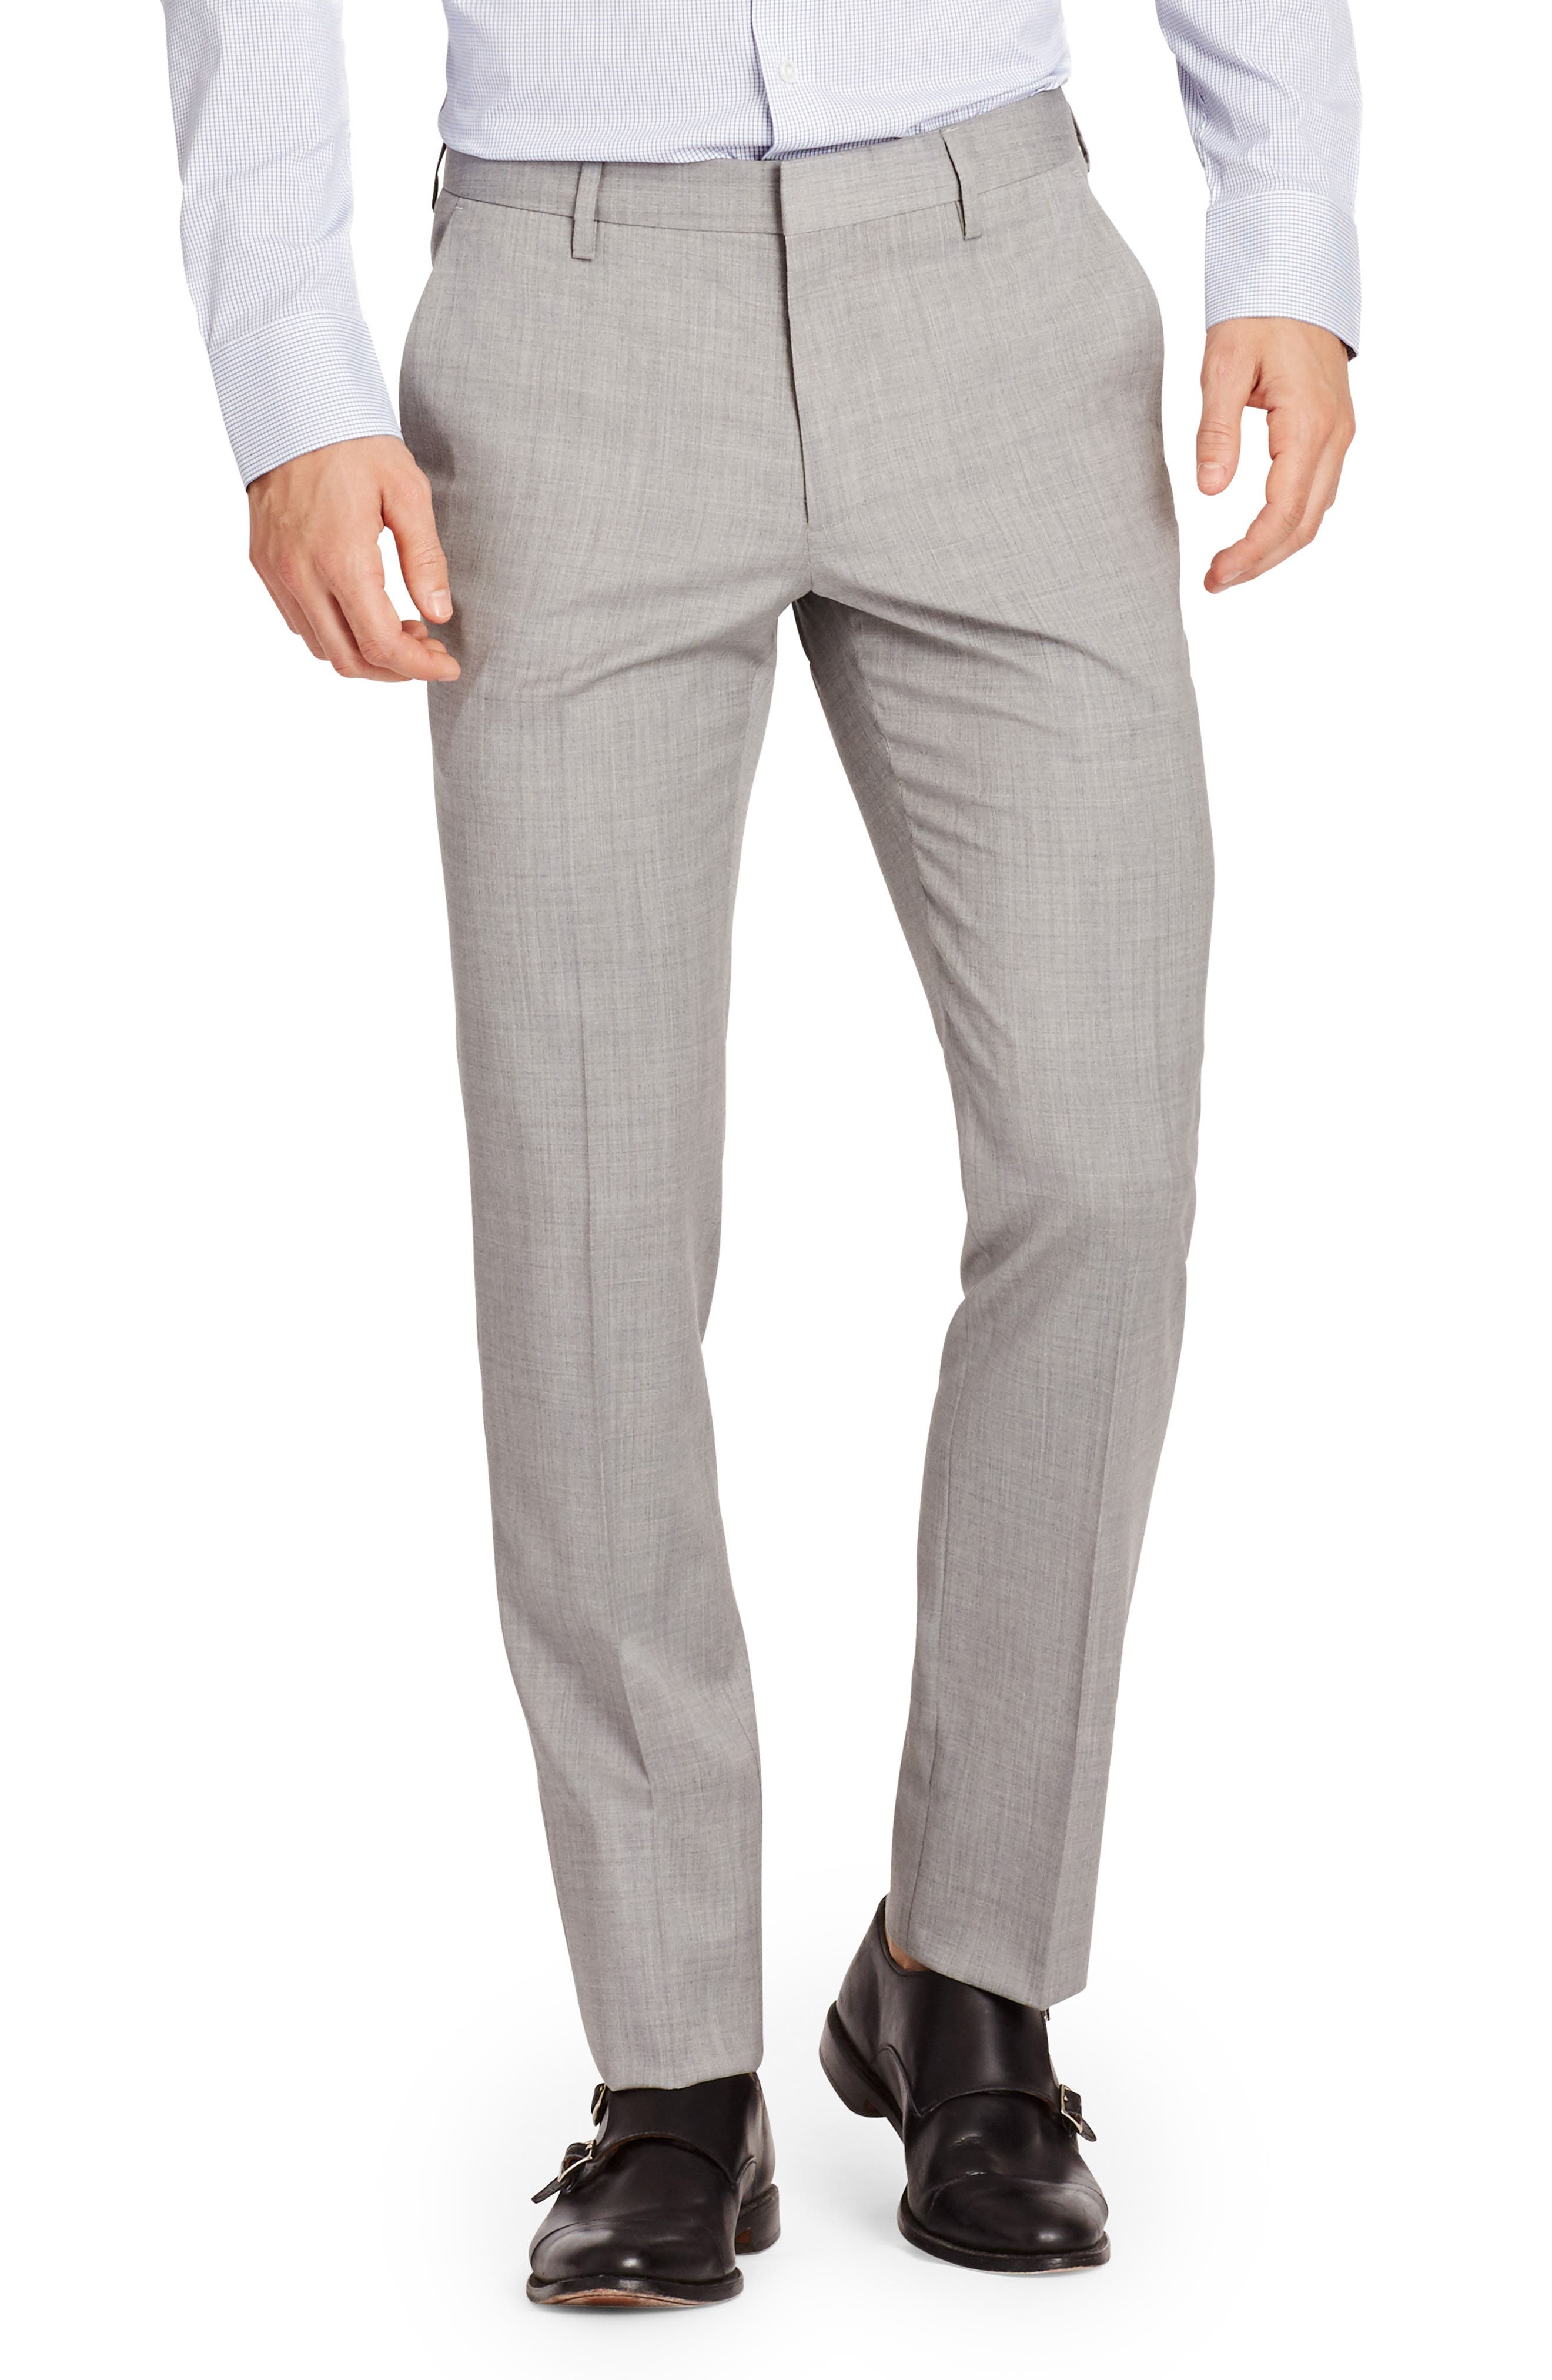 Jetsetter Flat Front Solid Stretch Wool Trousers,                         Main,                         color, Light Grey